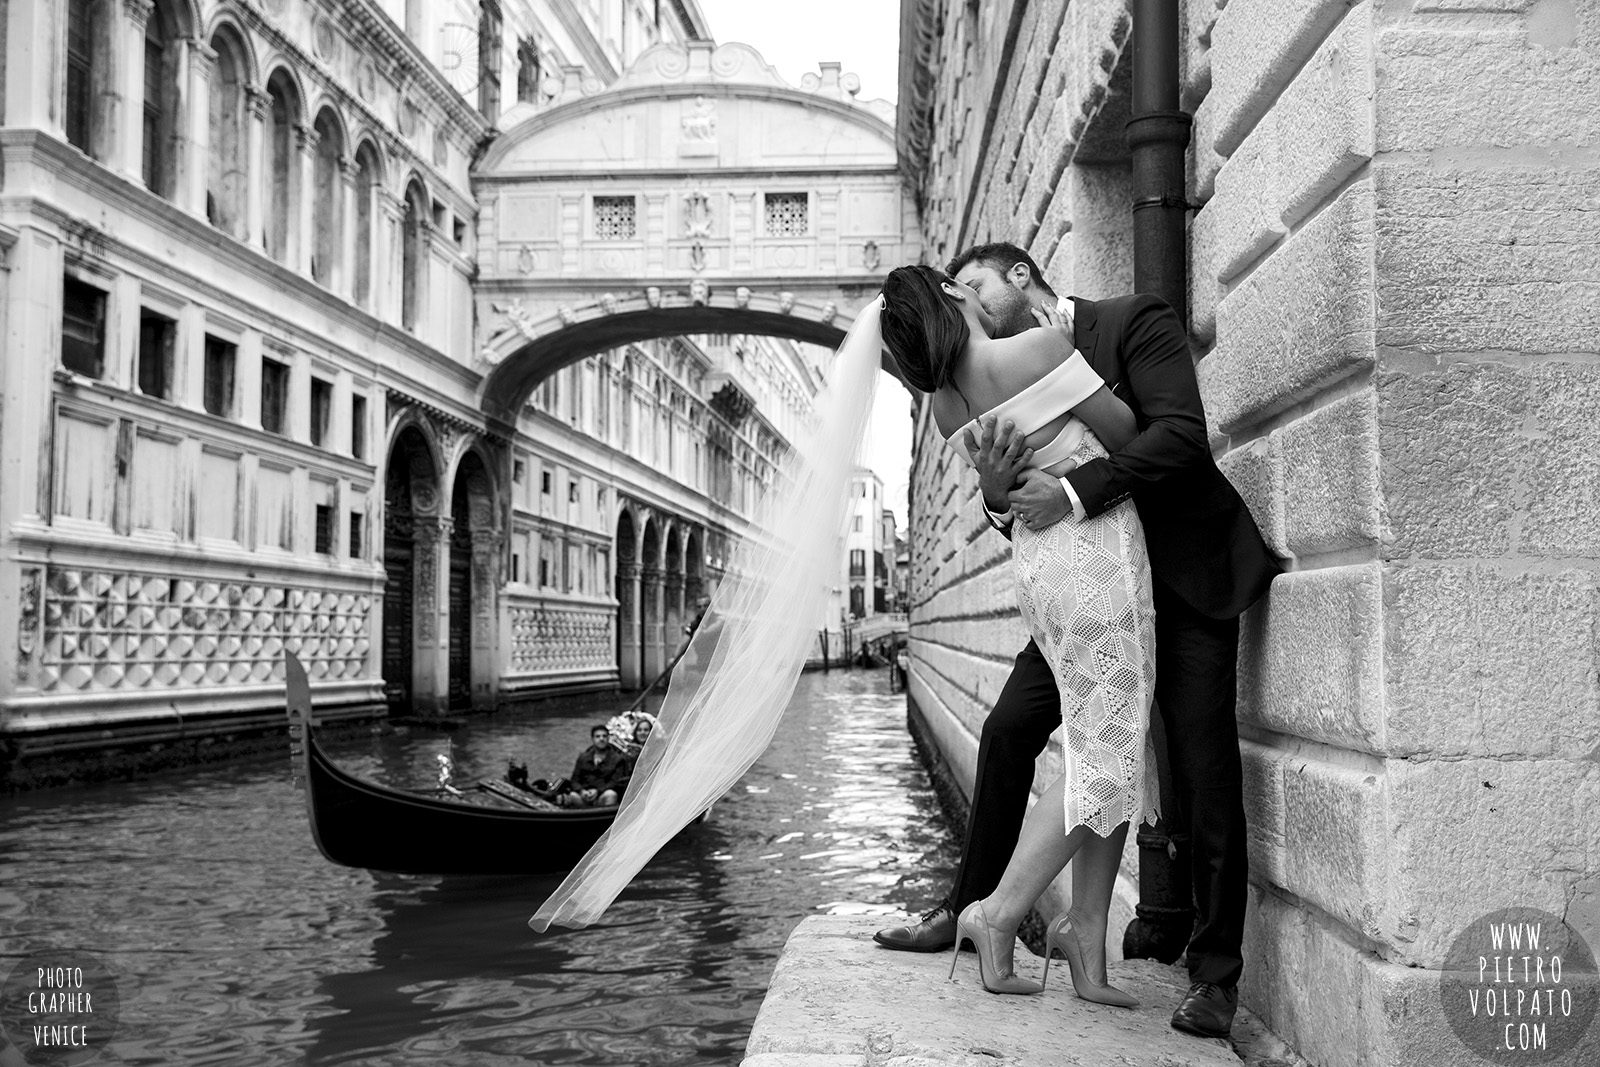 venice-wedding-photographer-couple-romantic-honeymoon-photoshoot-tour-20161005_01